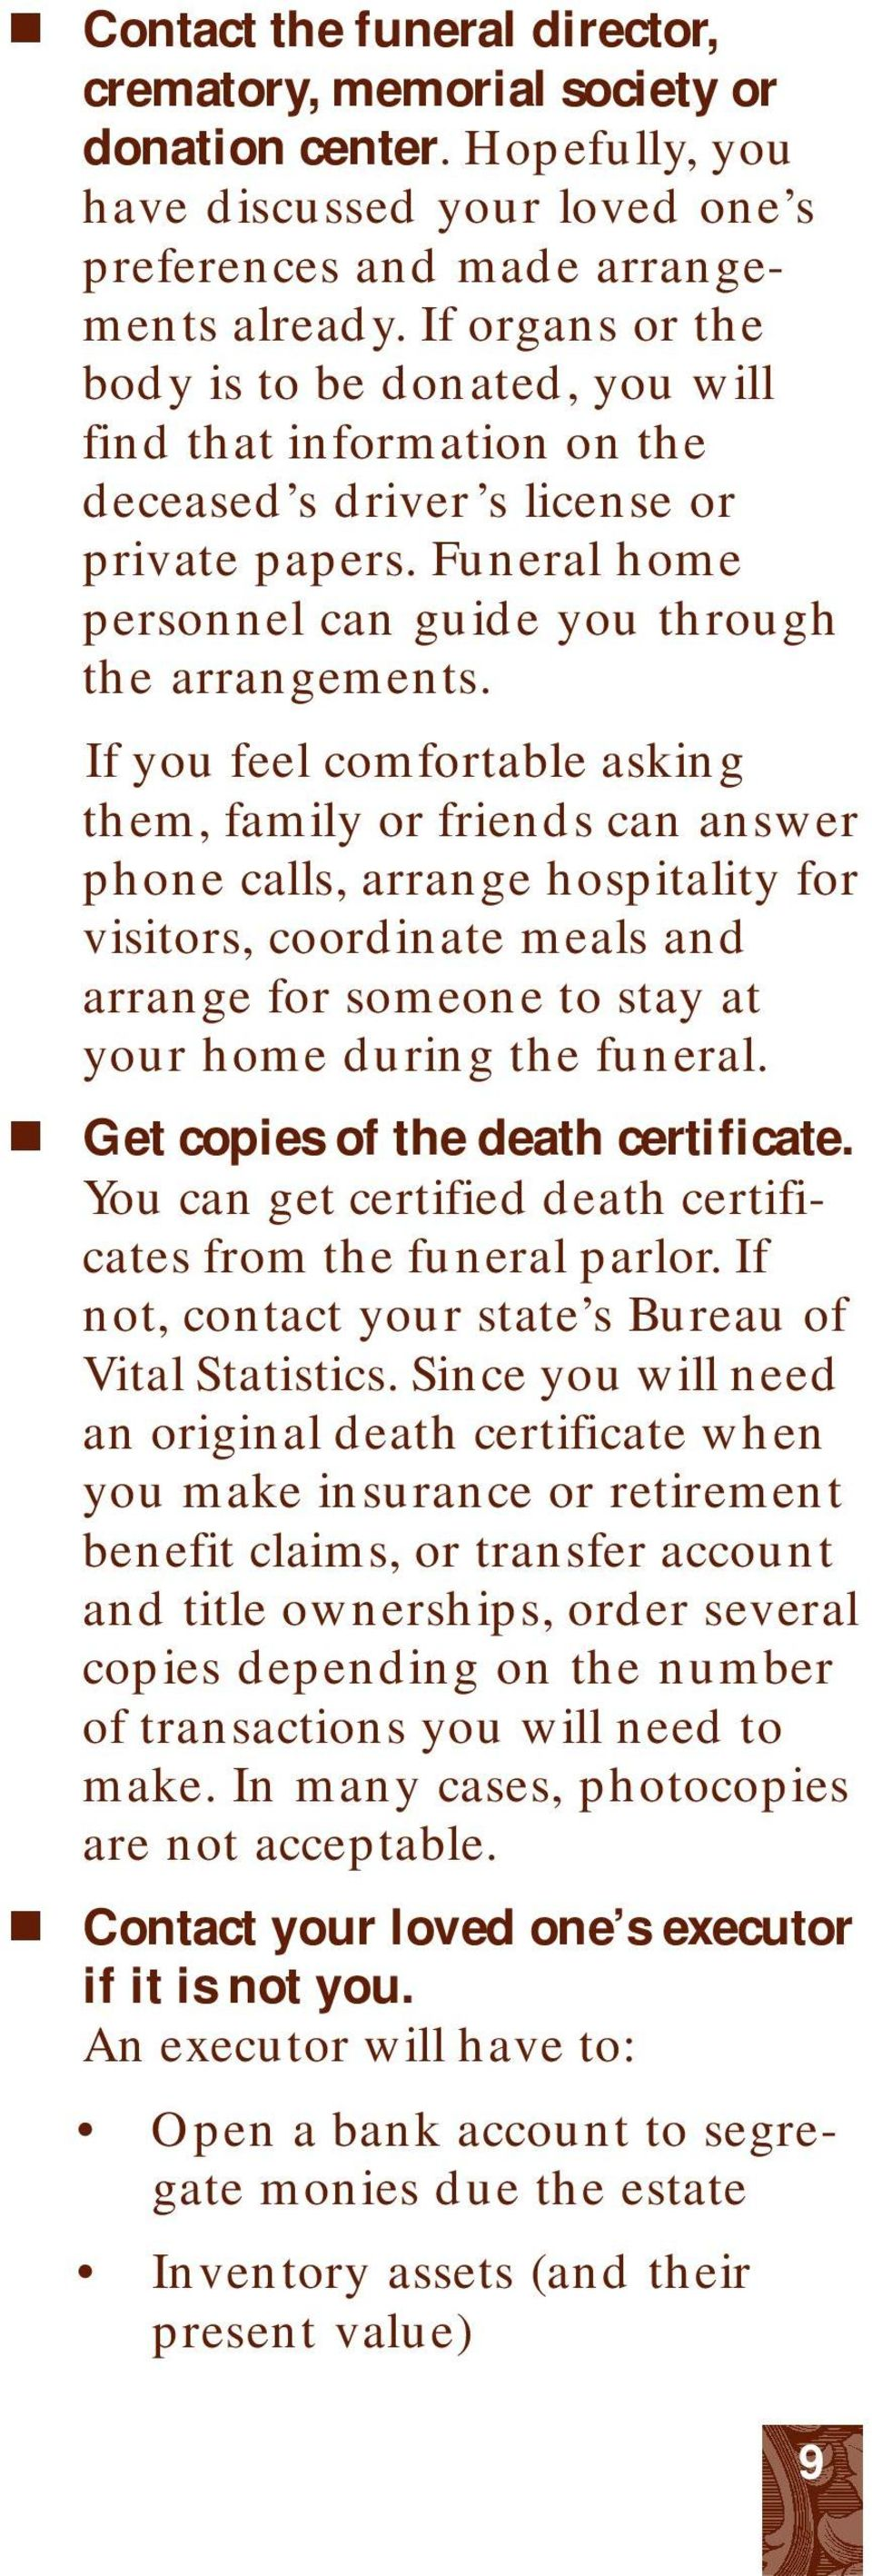 If you feel comfortable asking them, family or friends can answer phone calls, arrange hospitality for visitors, coordinate meals and arrange for someone to stay at your home during the funeral.